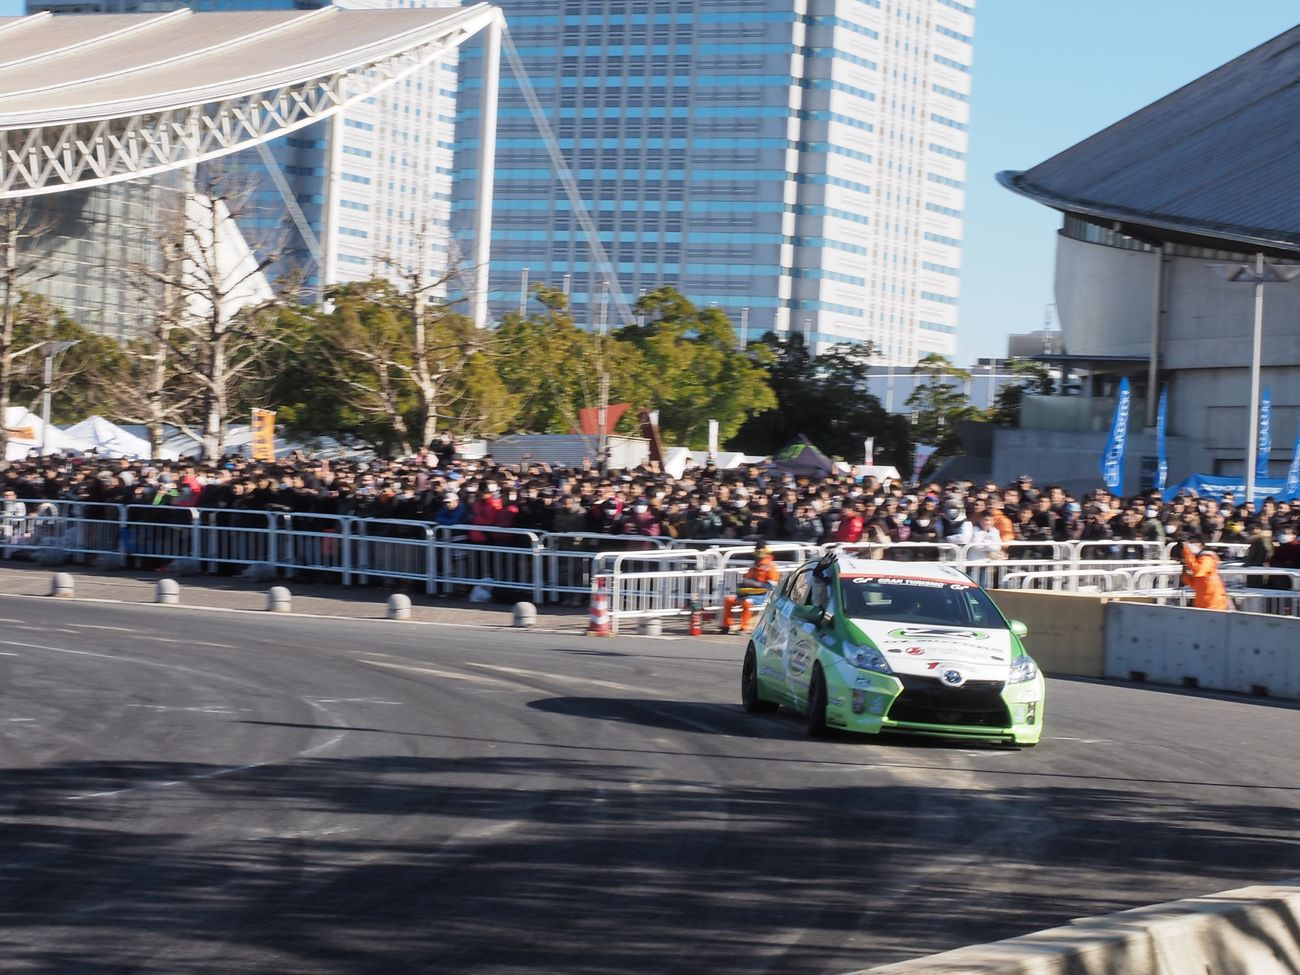 Prius, challenging drift!!(≧∇≦)……could not be drift(´・ω・`) Tokyo Auto Salon 2015 Prius Drift Drifting Car Cars Enjoying Life 東京オートサロン 東京オートサロン2015